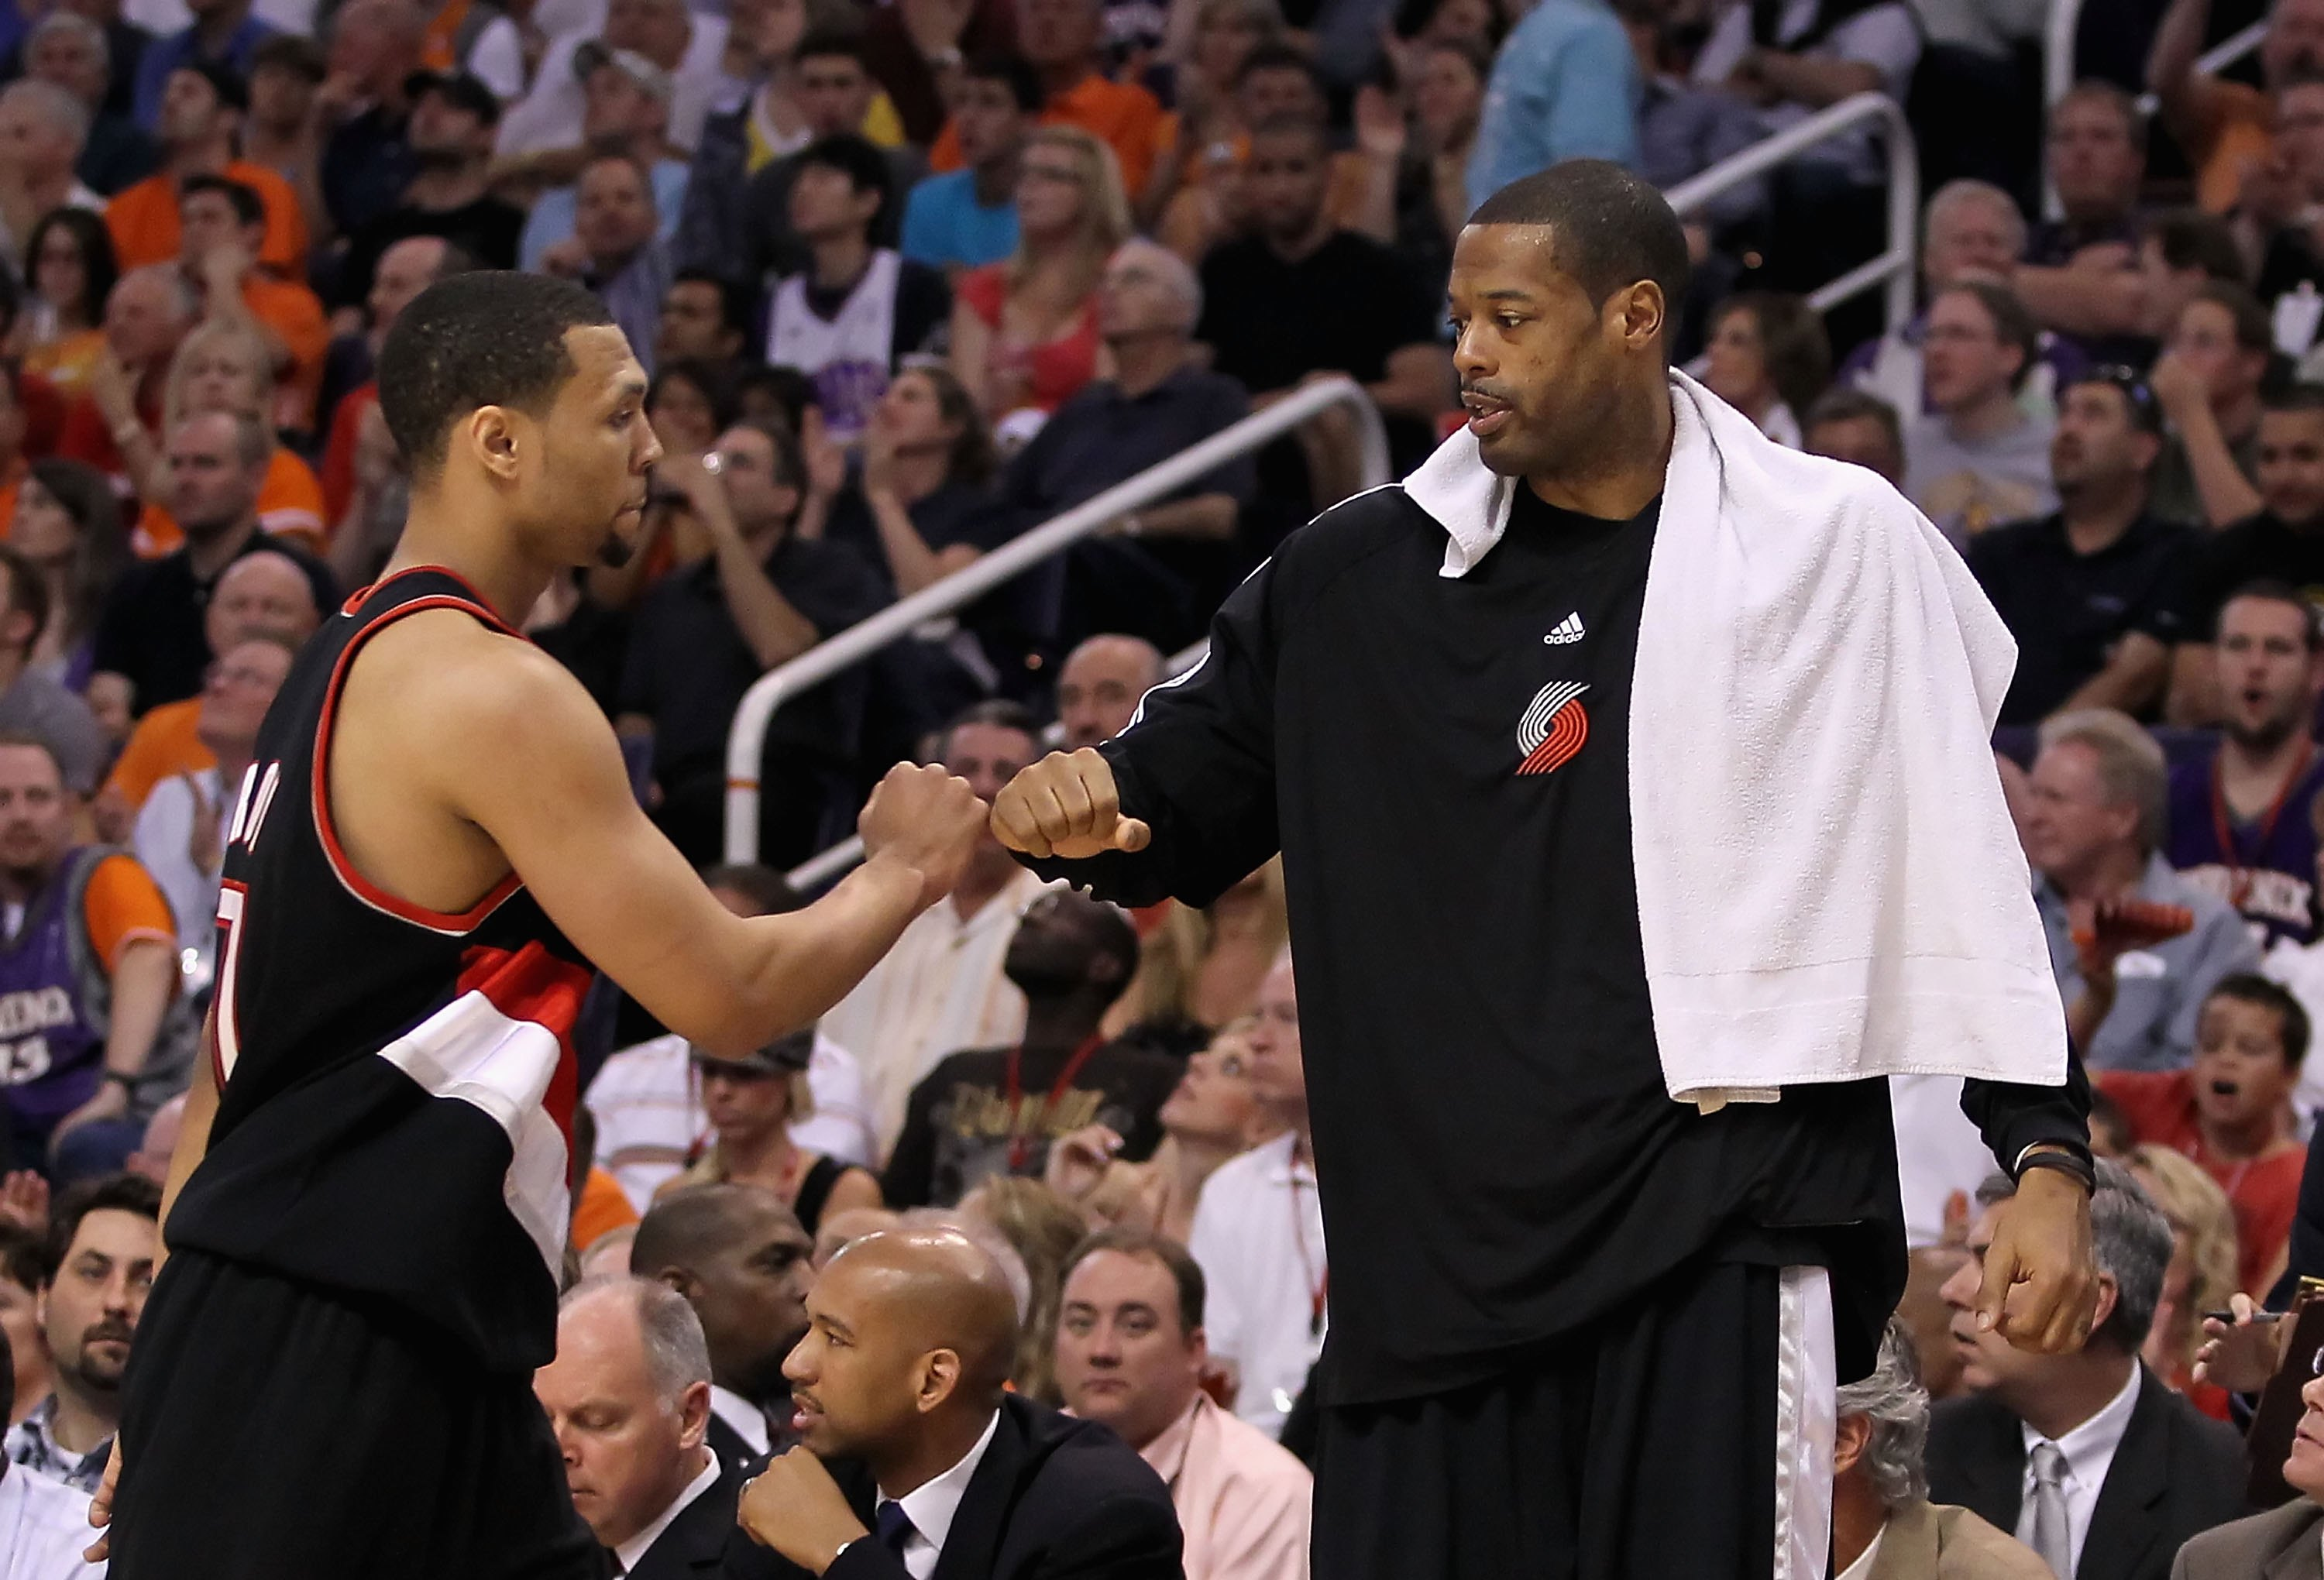 PHOENIX - APRIL 26:  Brandon Roy #7 and Marcus Camby of the Portland Trail Blazers during Game Five of the Western Conference Quarterfinals of the 2010 NBA Playoffs against the Phoenix Suns at US Airways Center on April 26, 2010 in Phoenix, Arizona. The S